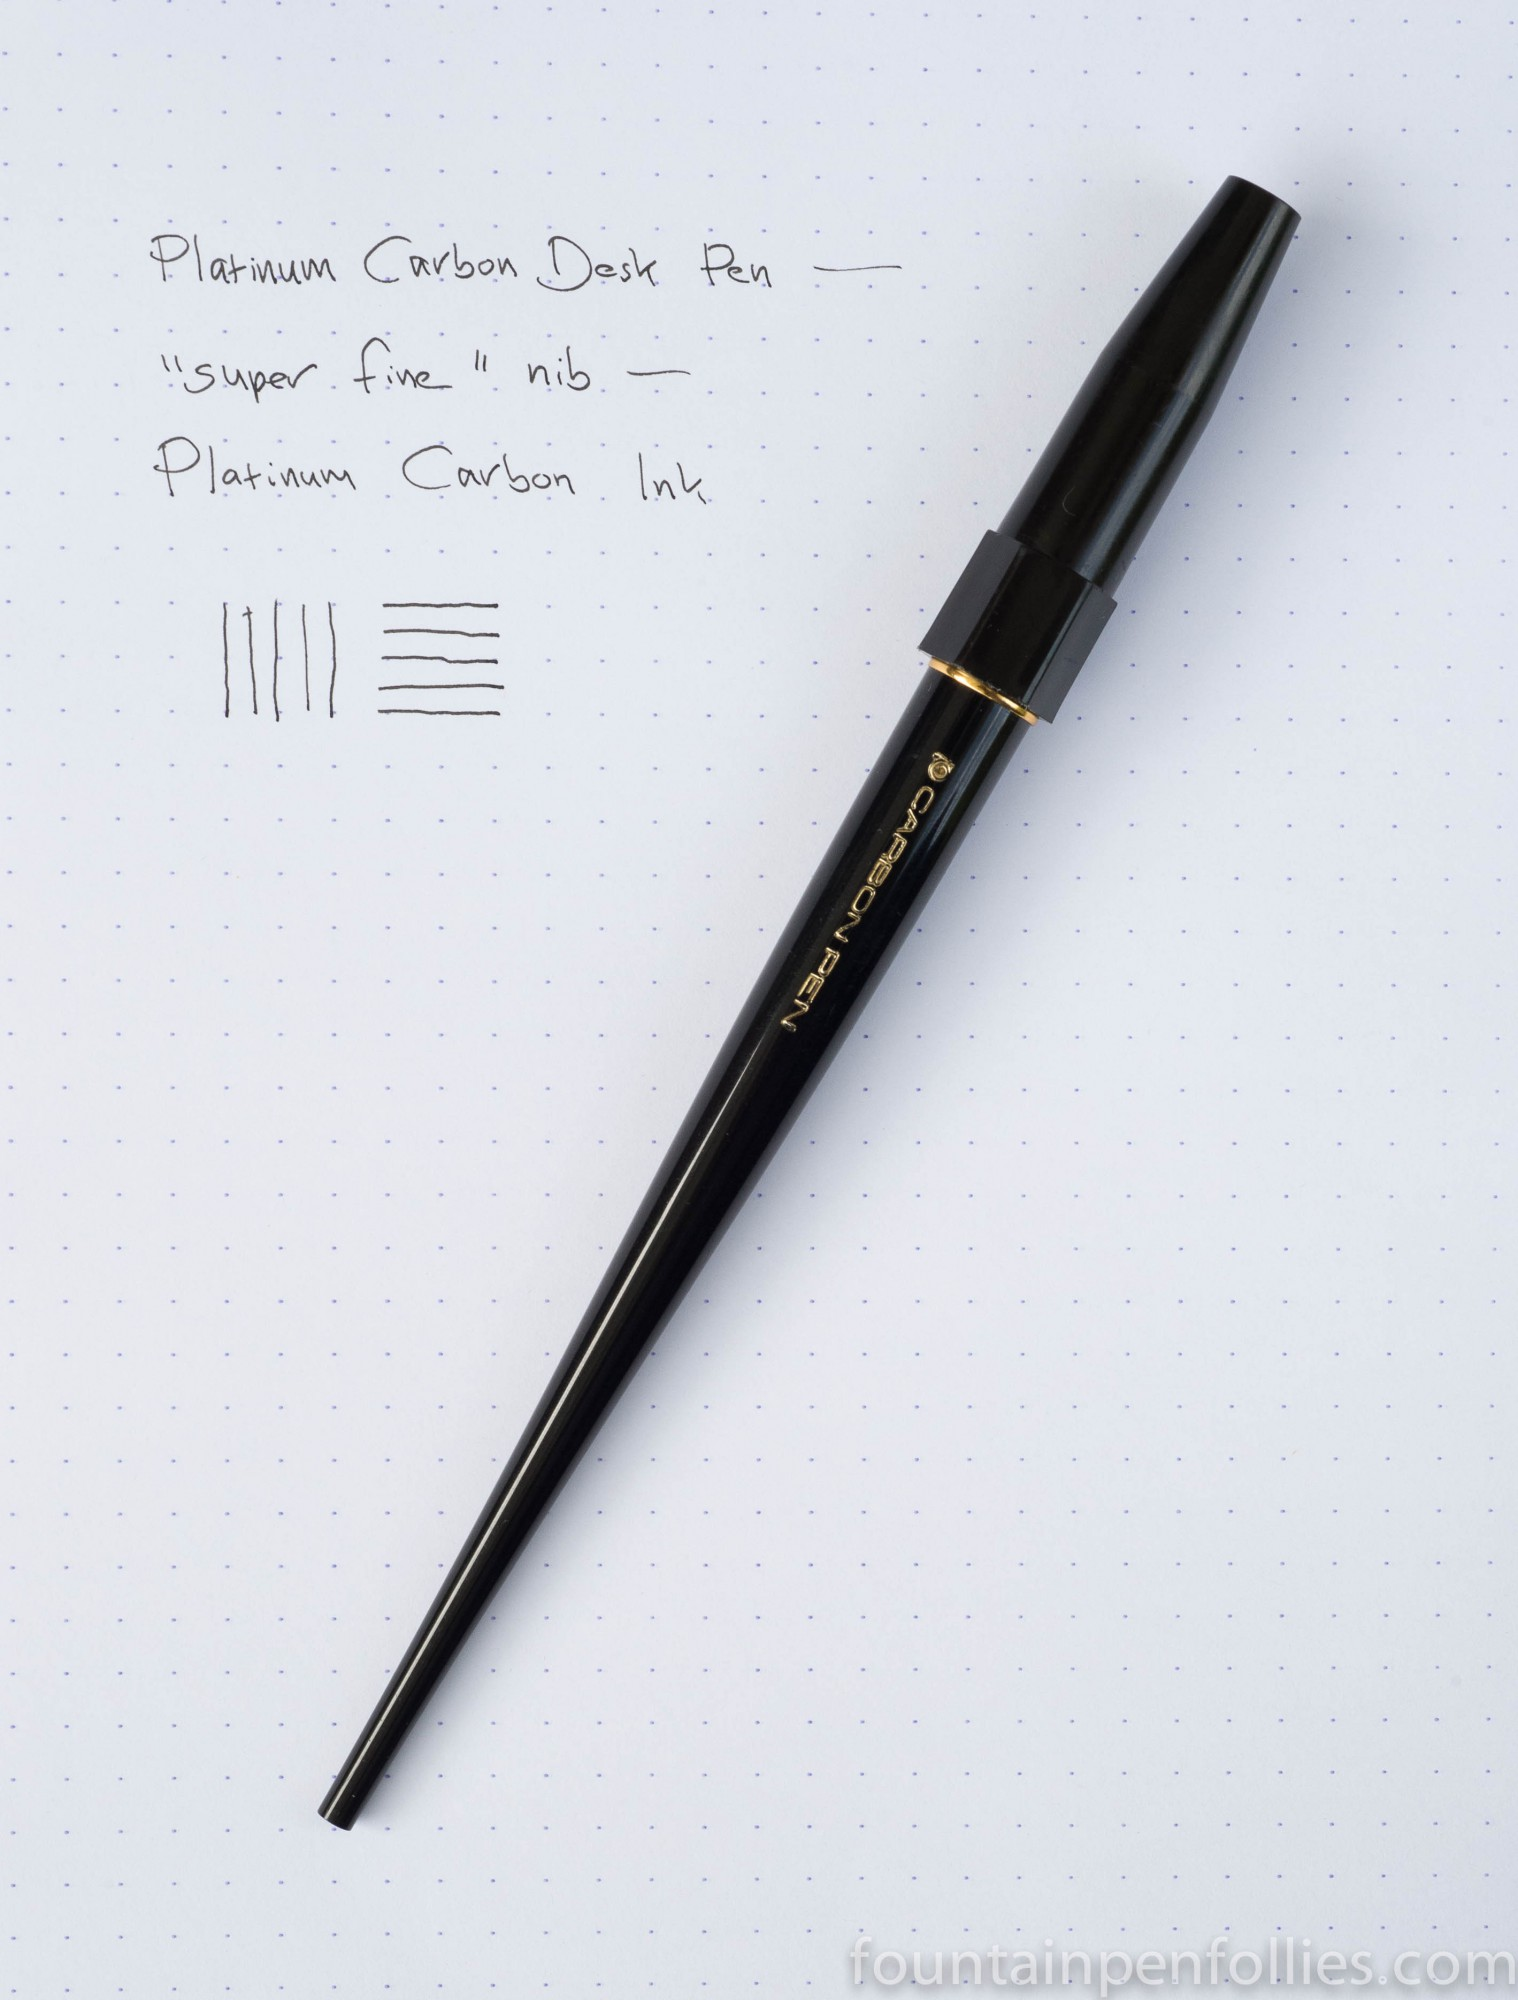 Pen of the Day: Platinum Carbon Desk Pen – Fountain Pen ...